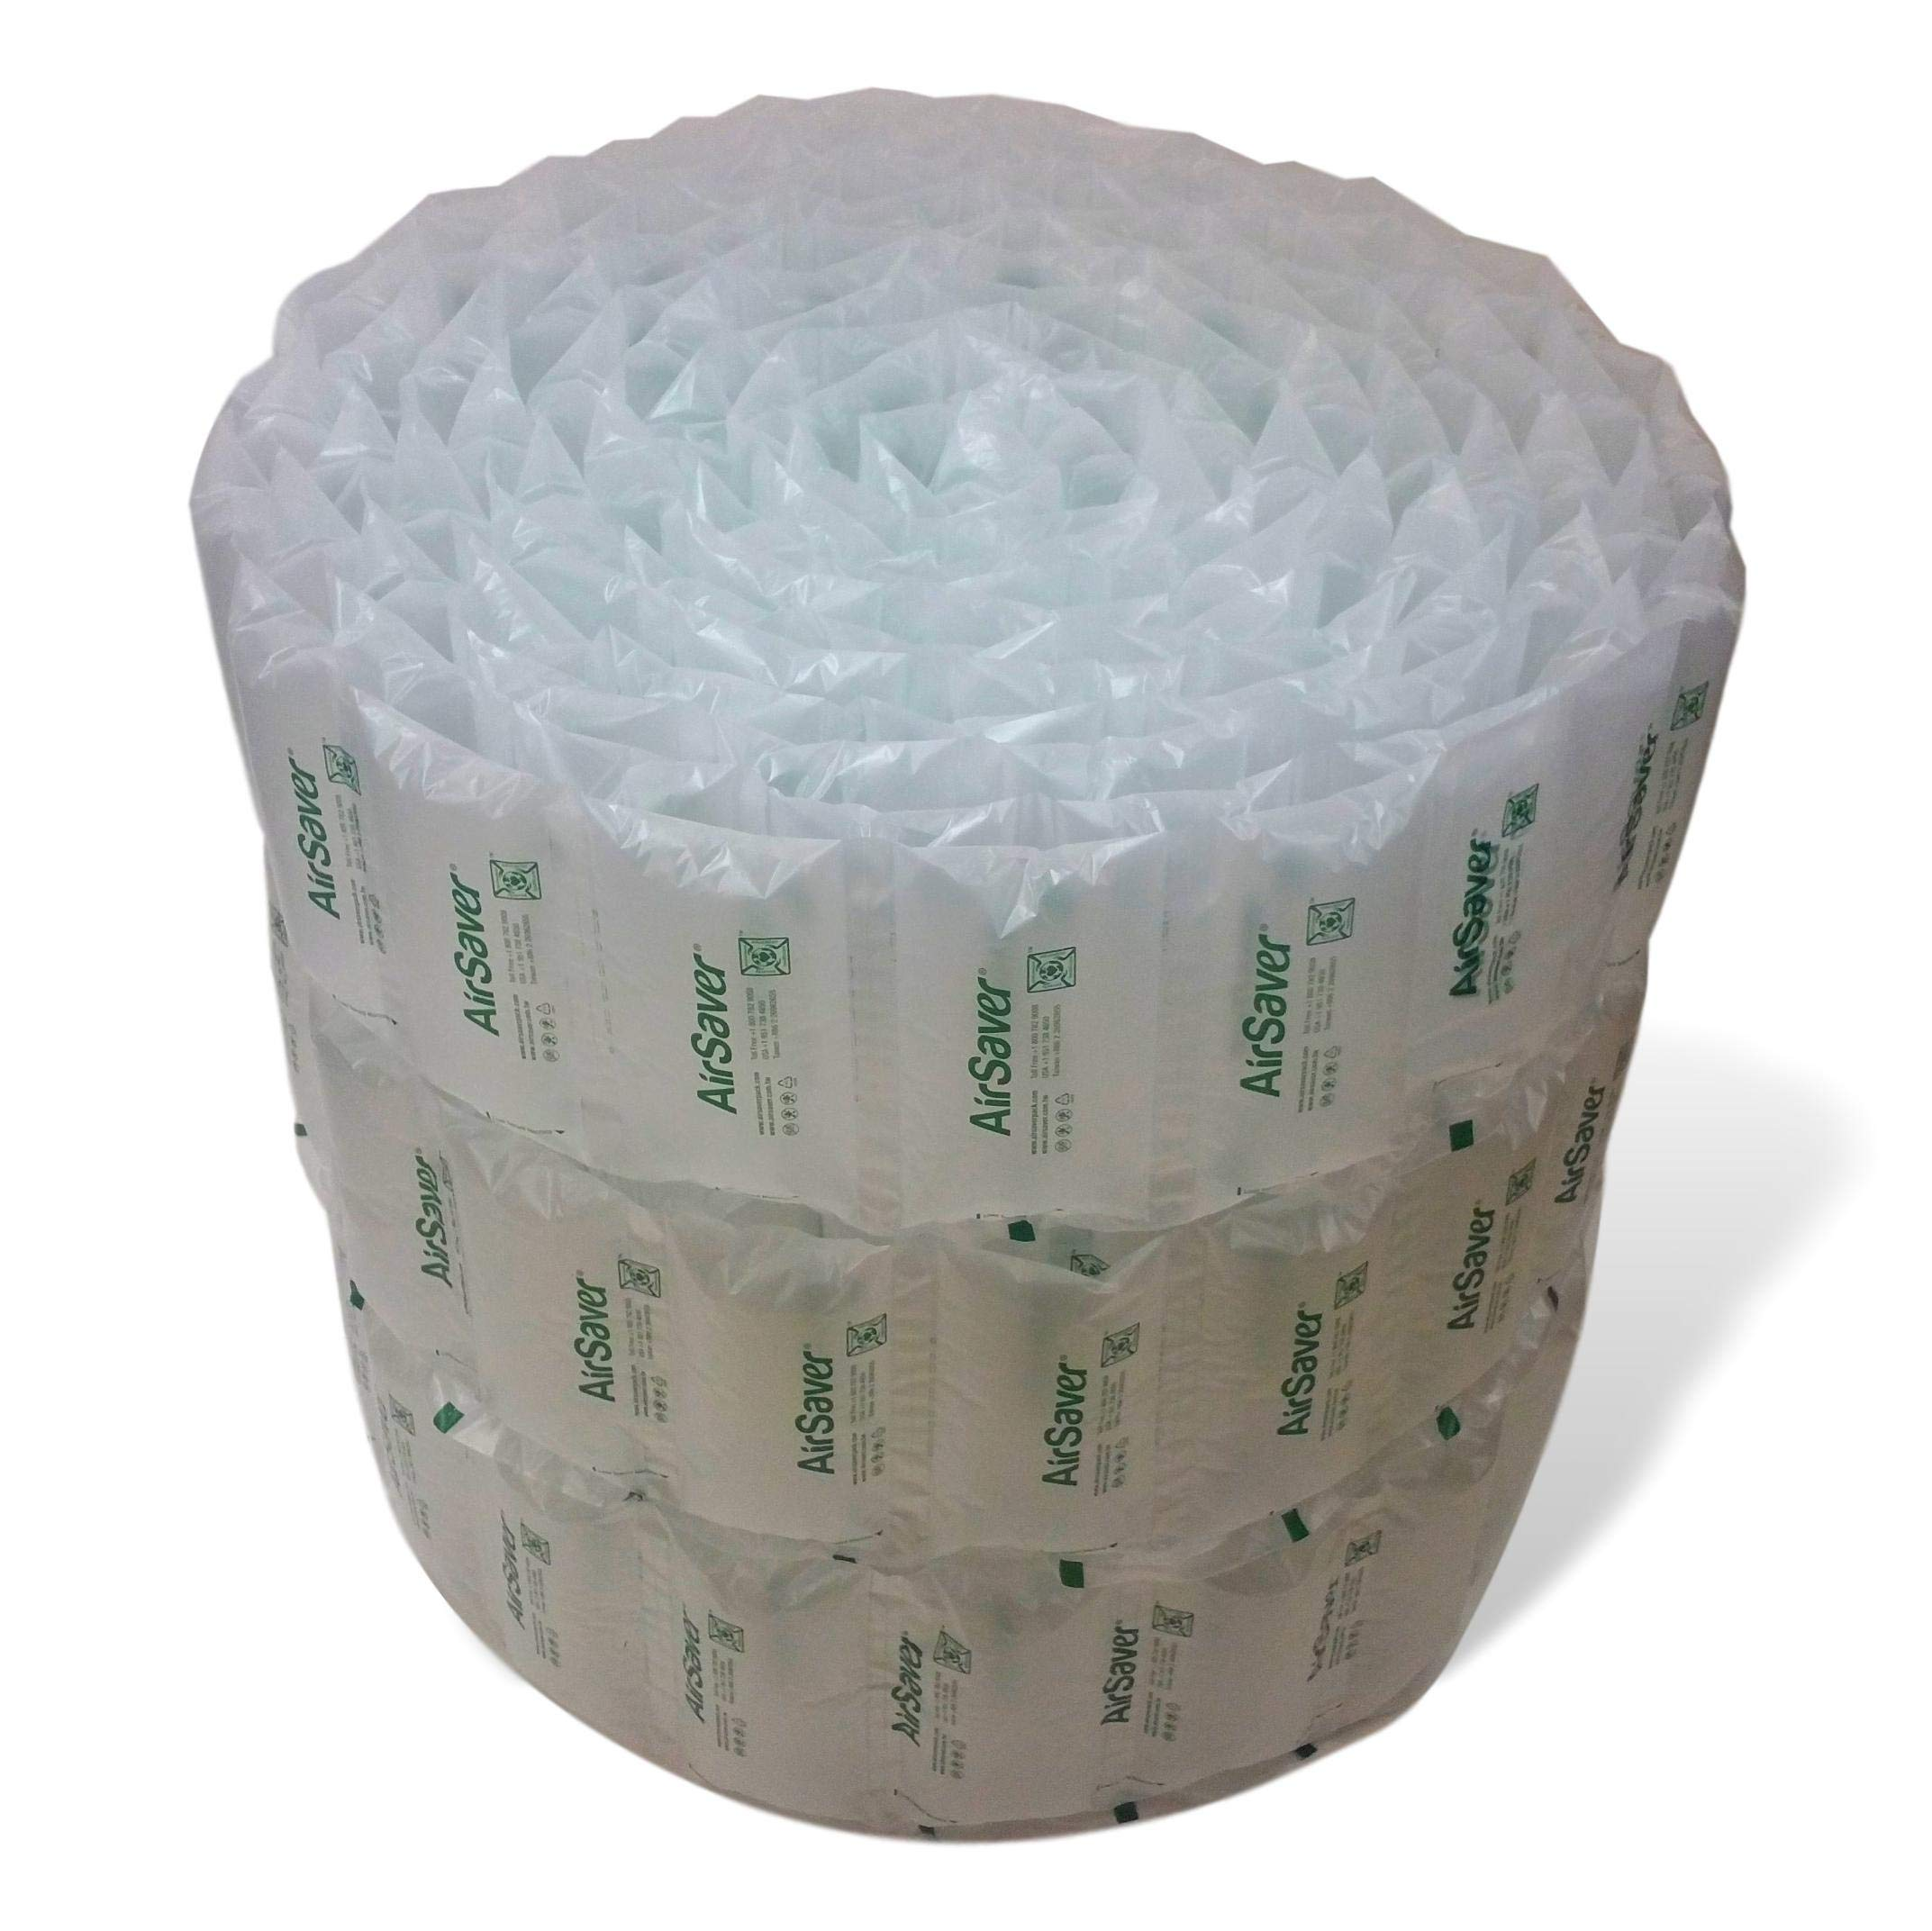 320 Count 4x8 airSaver air Pillows (3 Large Rolls) 39 gallons 5 Cubic feet Green Void Fill Cushioning eco Friendly by Airsaver Pack (Image #1)